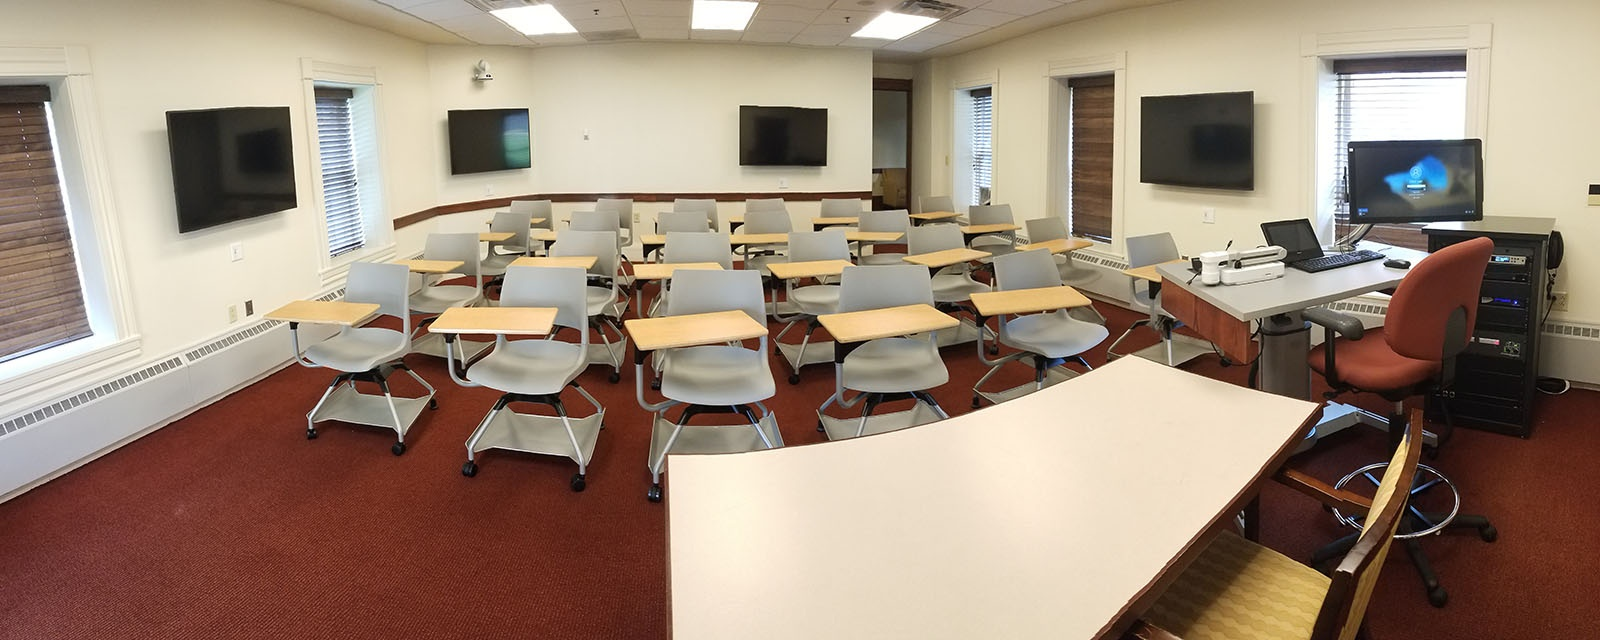 Panorama of Tolley 104 from front of room, movable chairs, teaching station front right